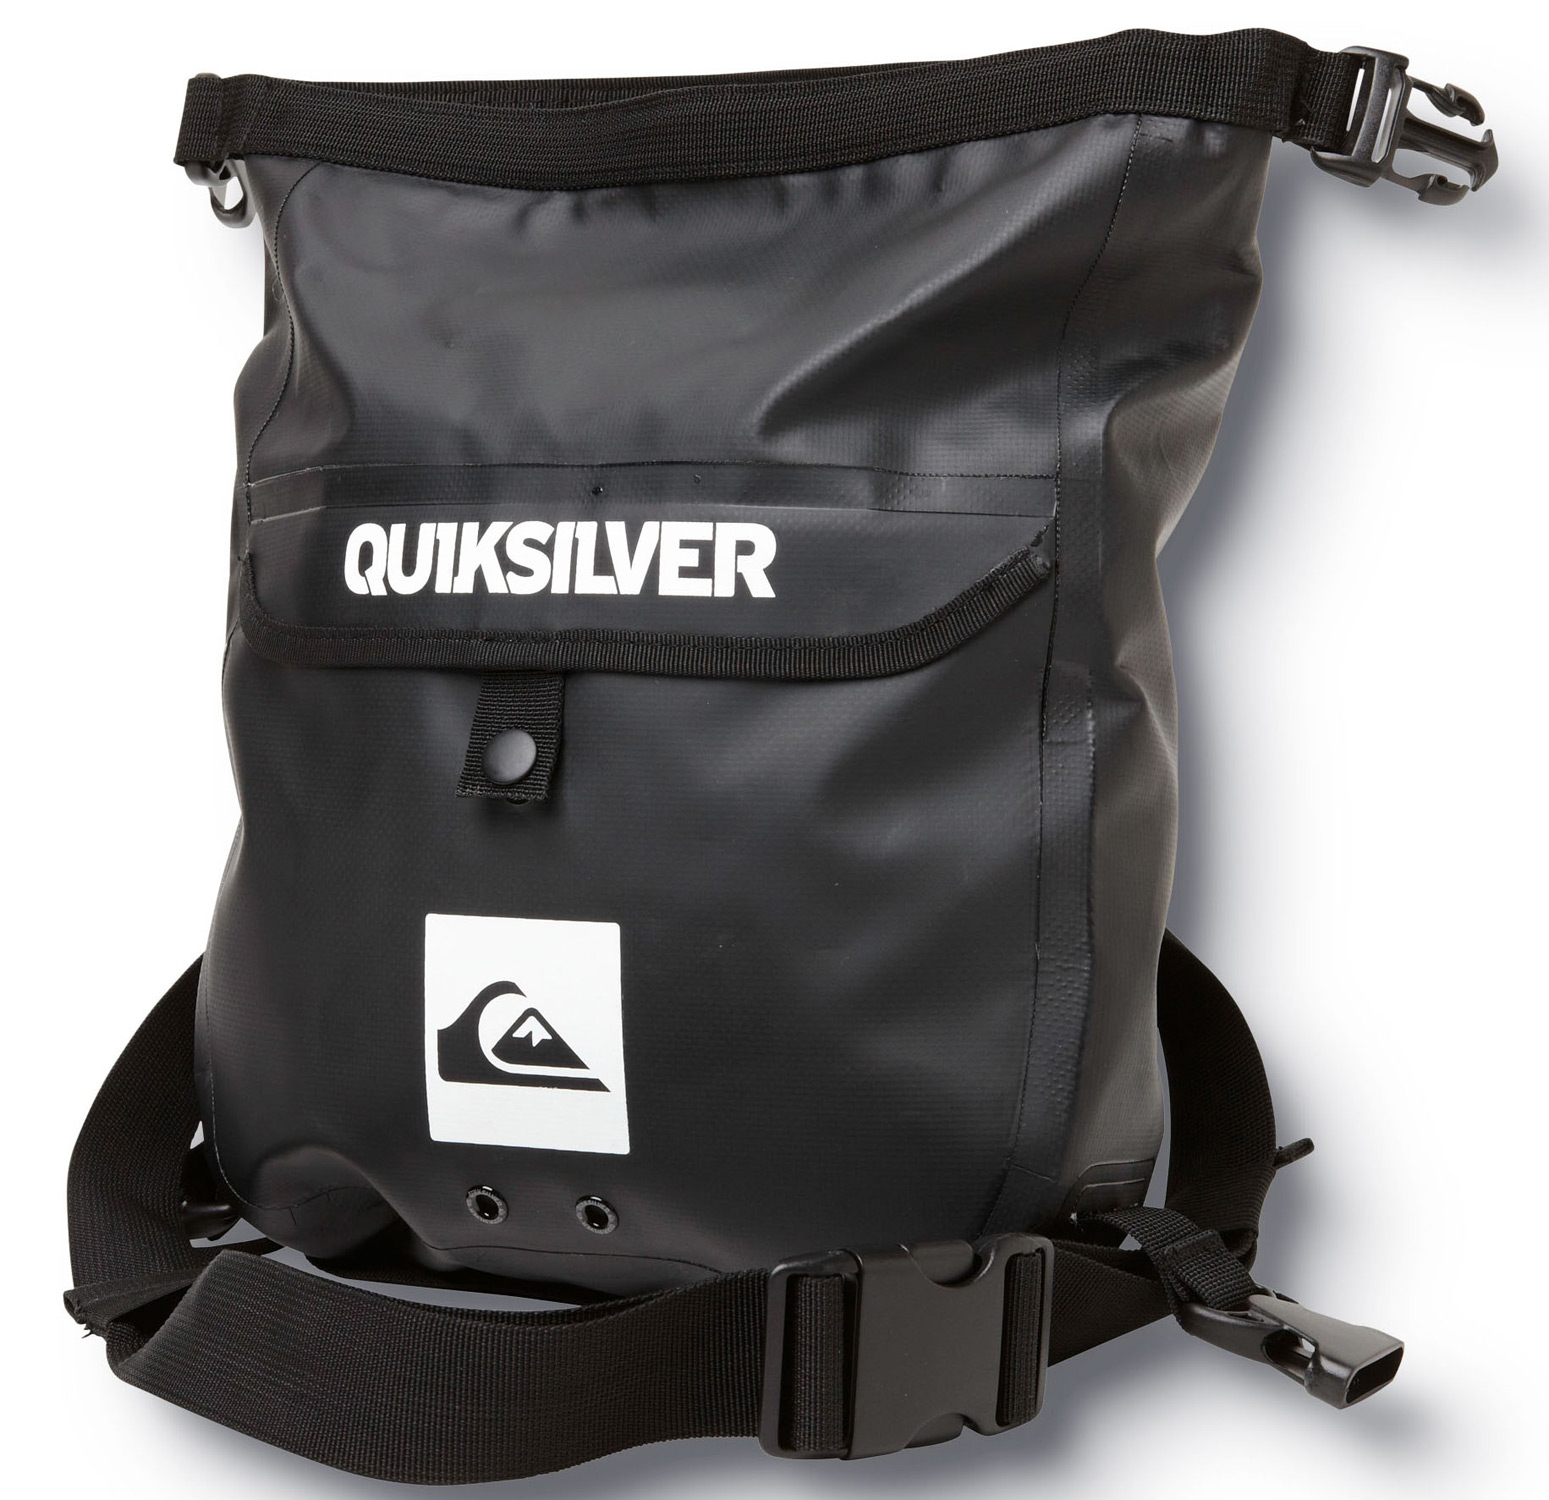 "Surf Key Features of the Quiksilver Sea Tote Backpack 4L: Volume: 4L Size: 13""x13""x3.15"" Seam sealed tarpaulin Roll top sealable dry waistpack with side SR buckles Sealable as a standard roll top dry bag as well Removable waist strap with velcro attachment points for attaching to other gear Front pocket with snap closure - $25.95"